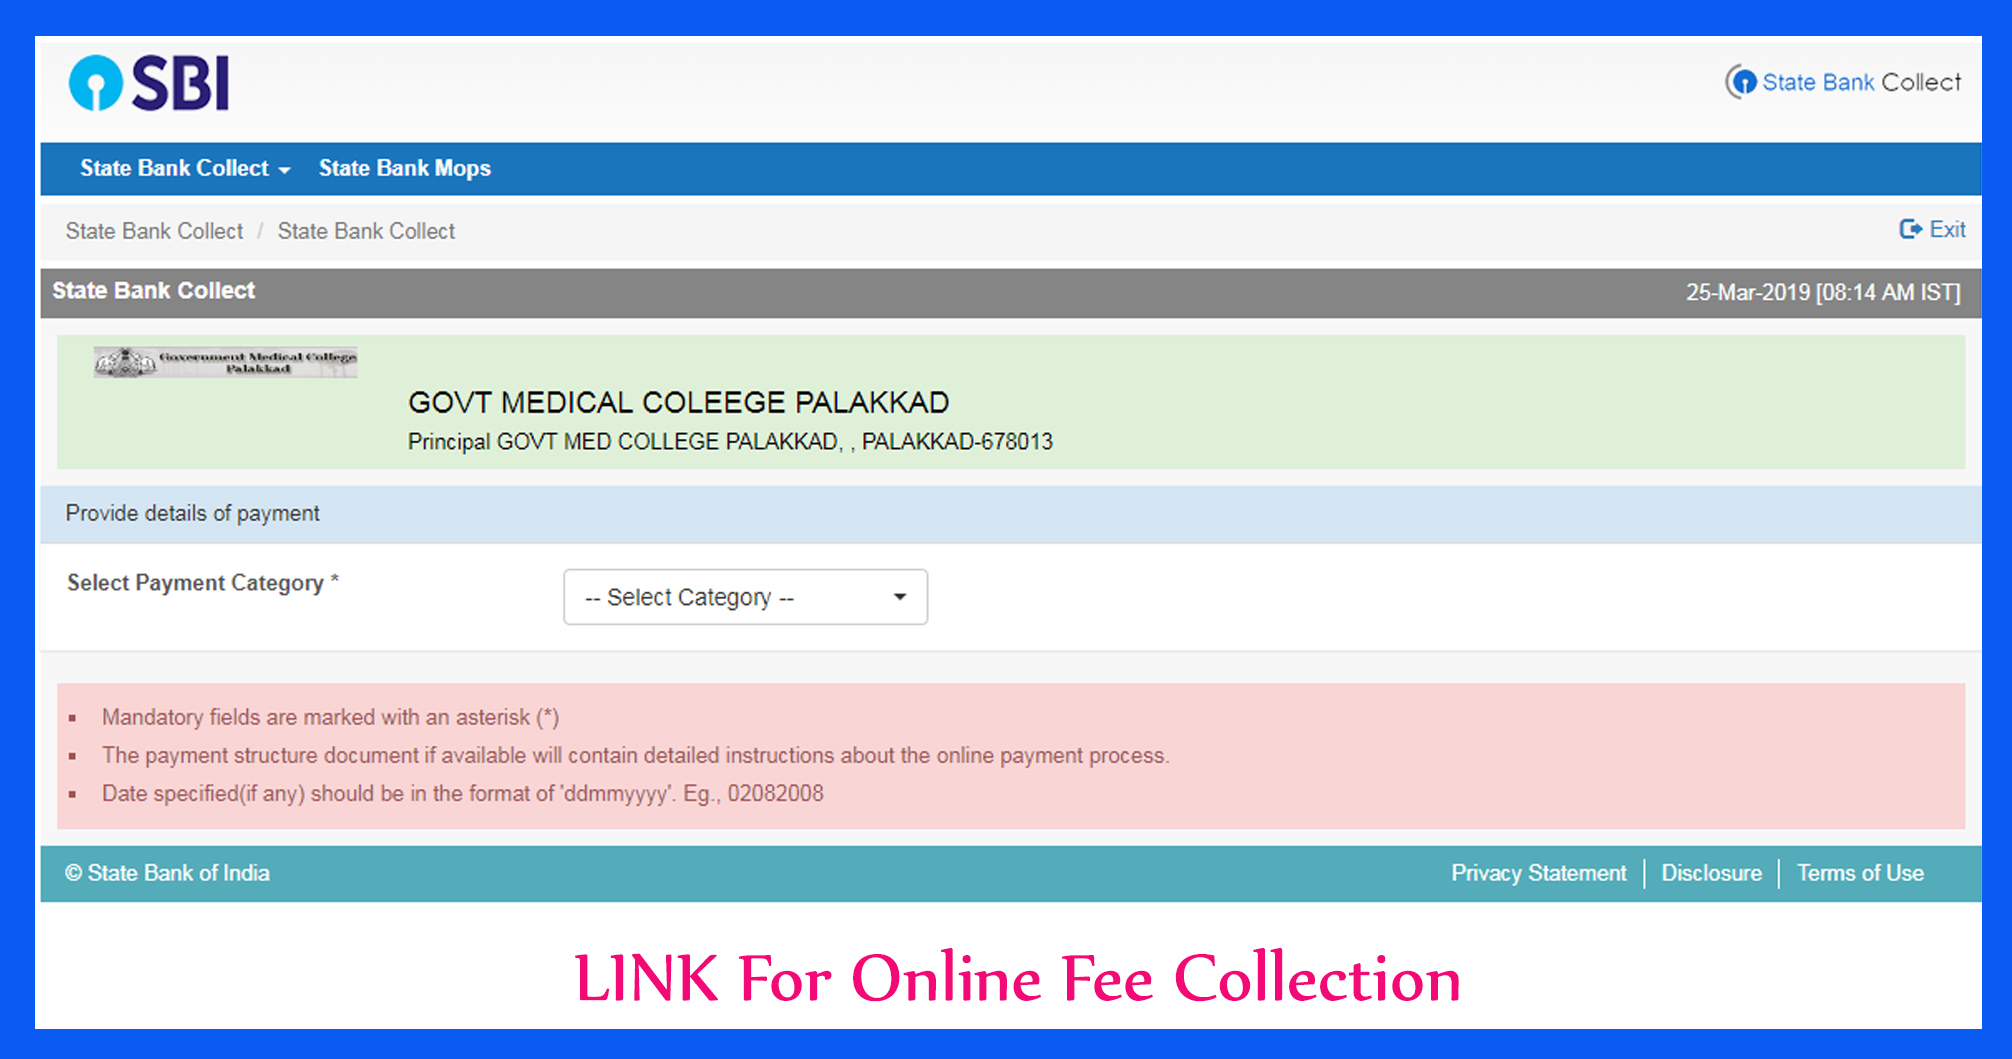 Online Fee Collection Link - SBI